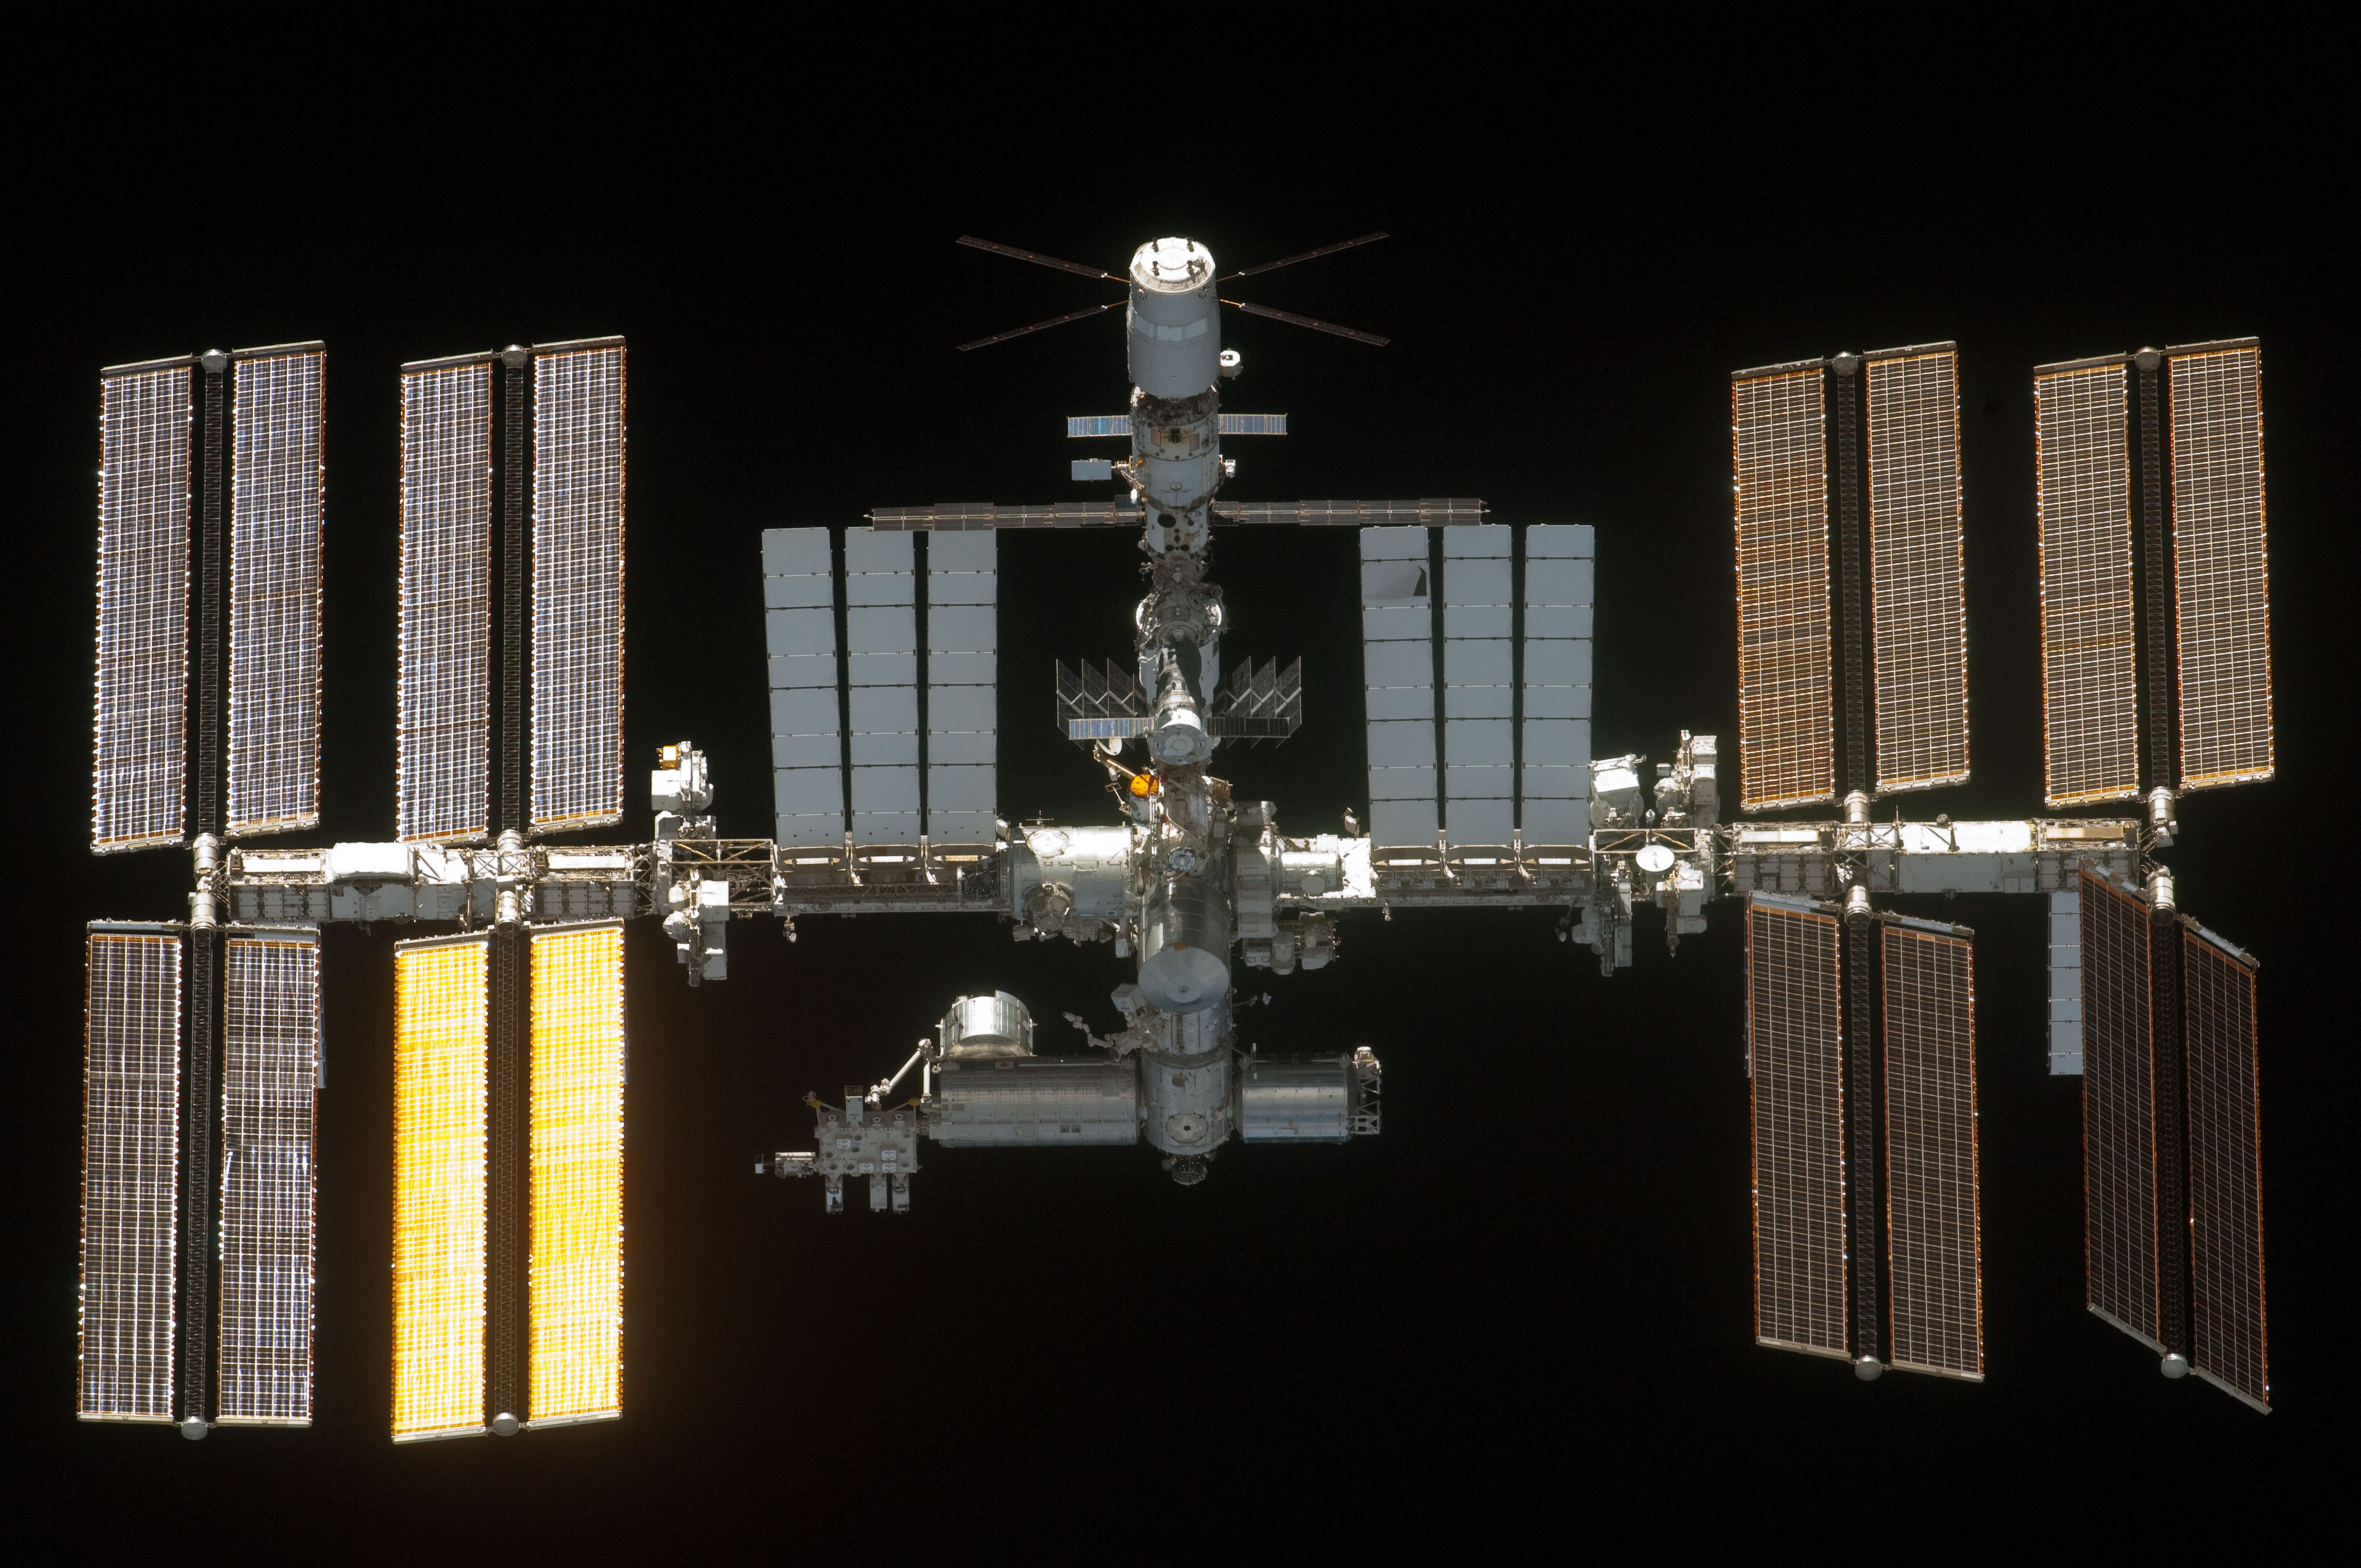 solar powered space station - photo #11